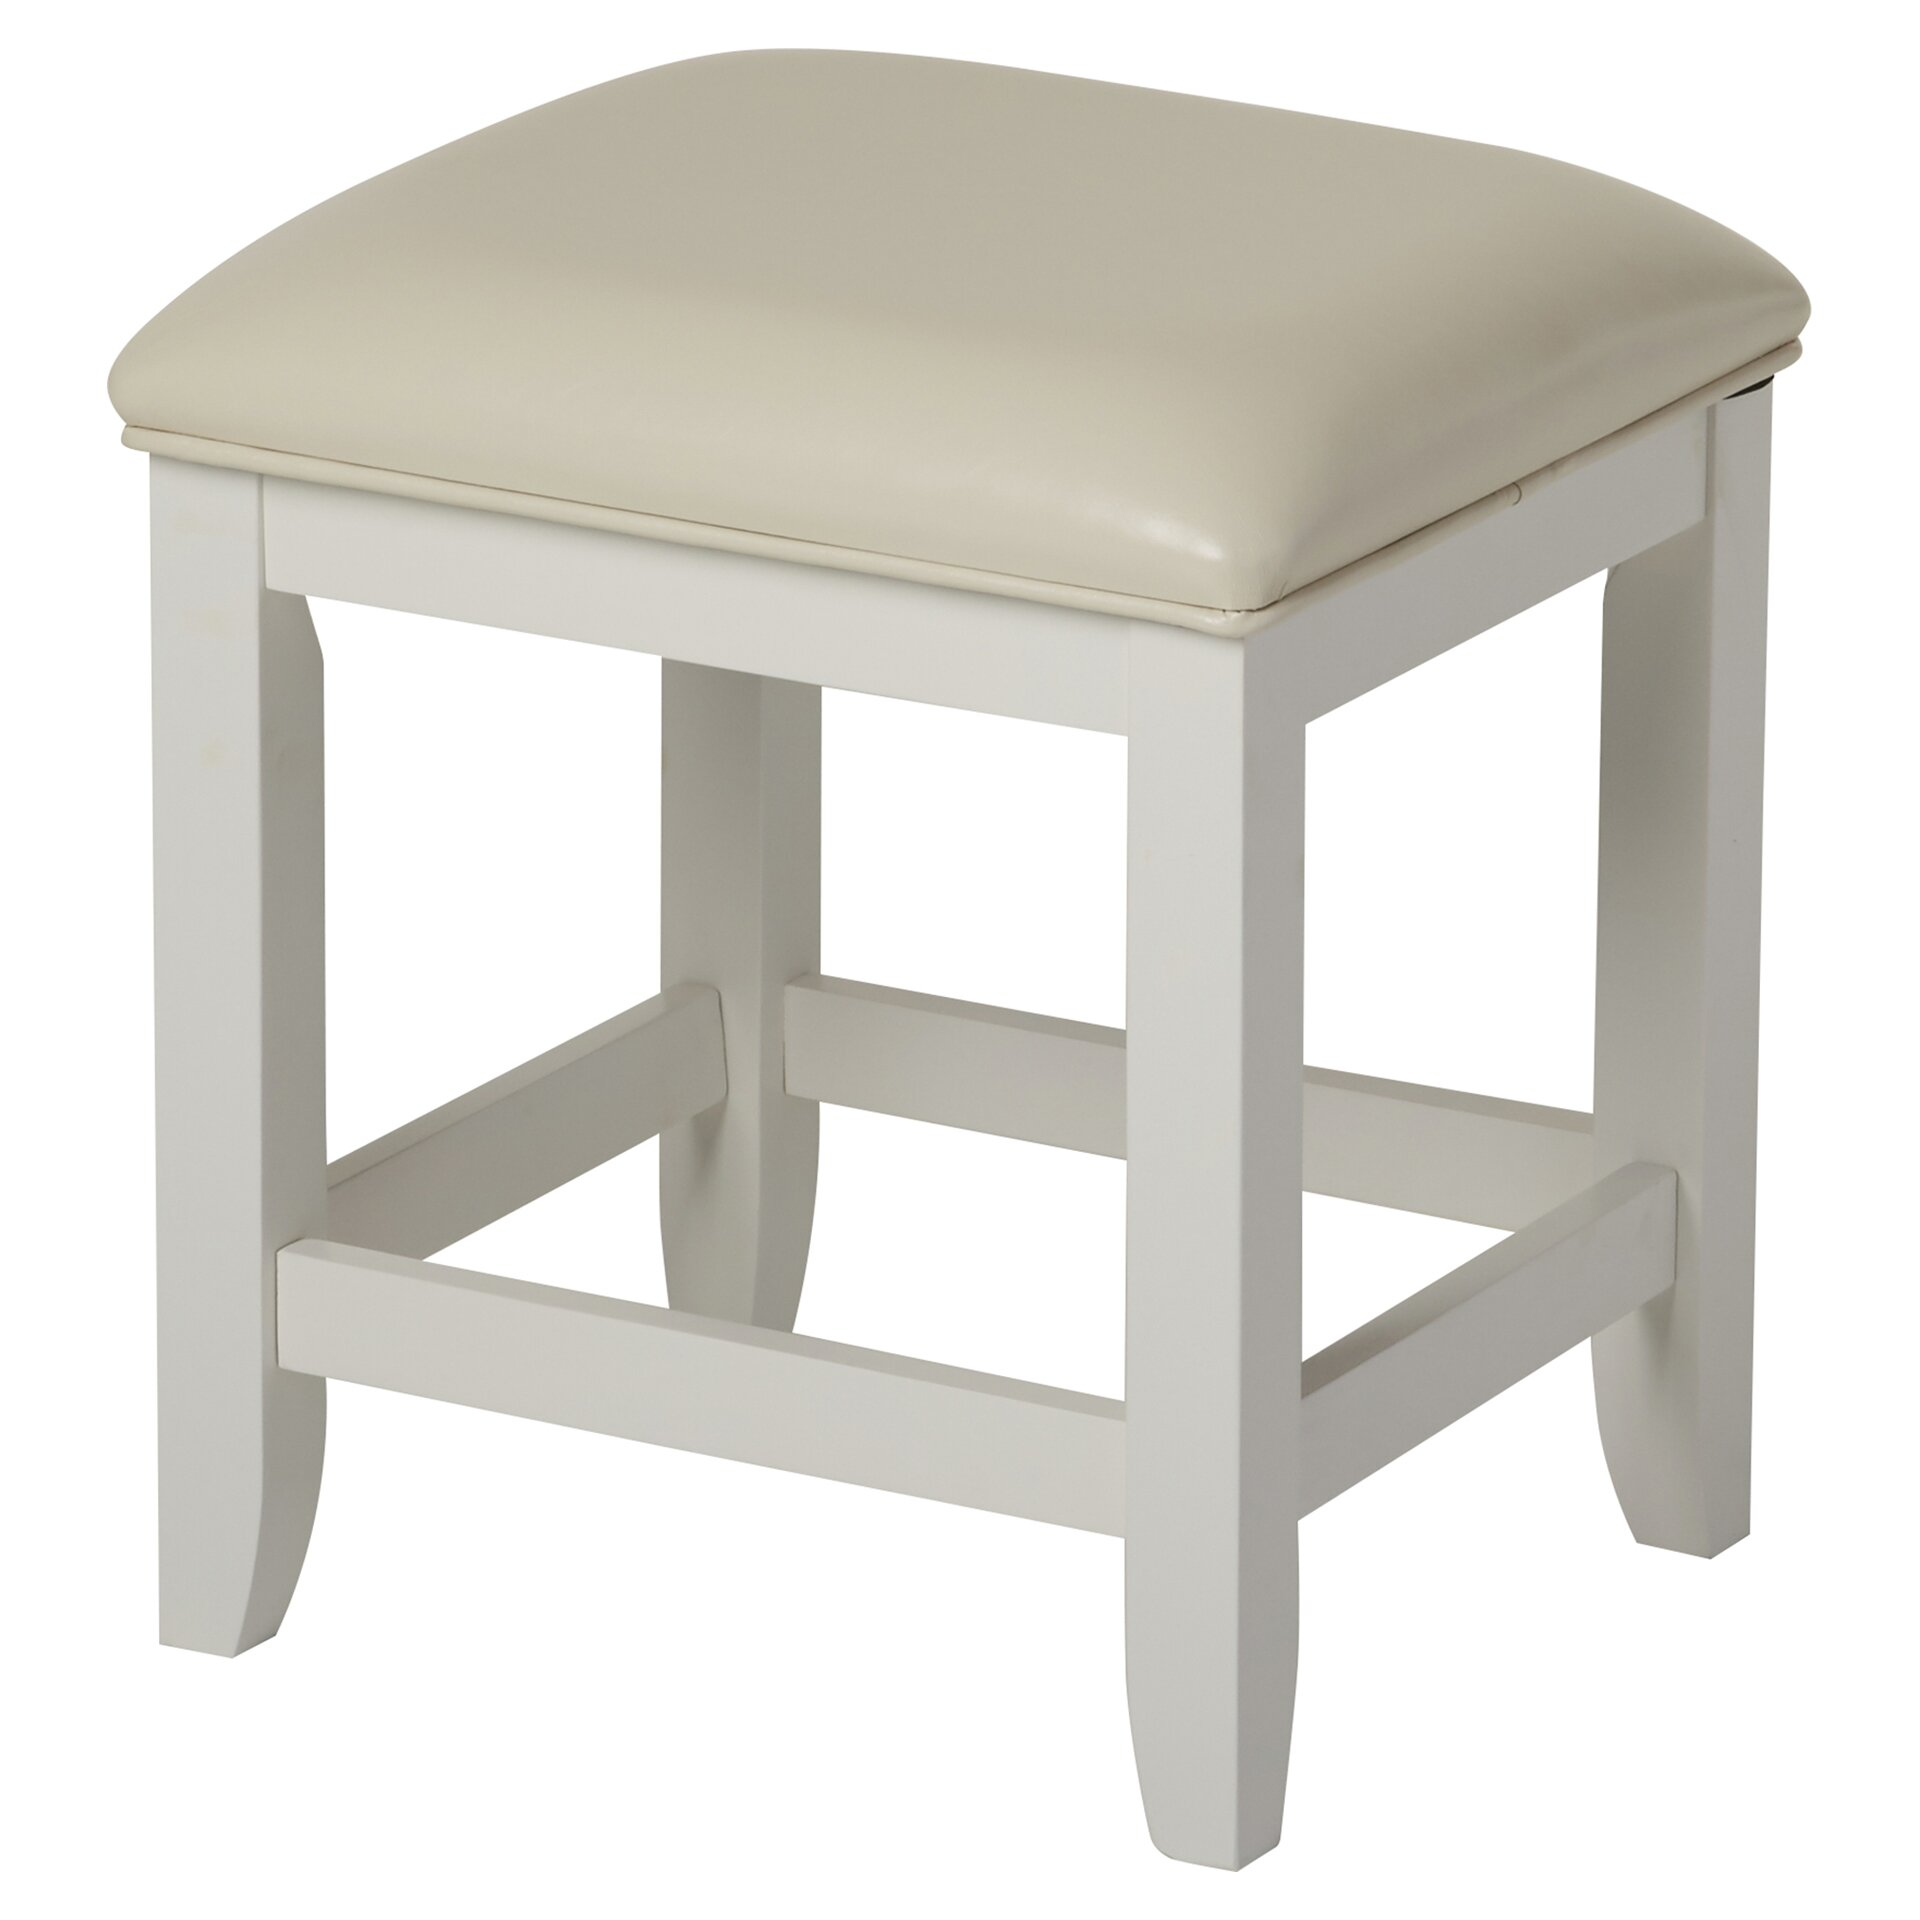 Beachcrest Home Westwood Vanity Stool & Reviews | Wayfair